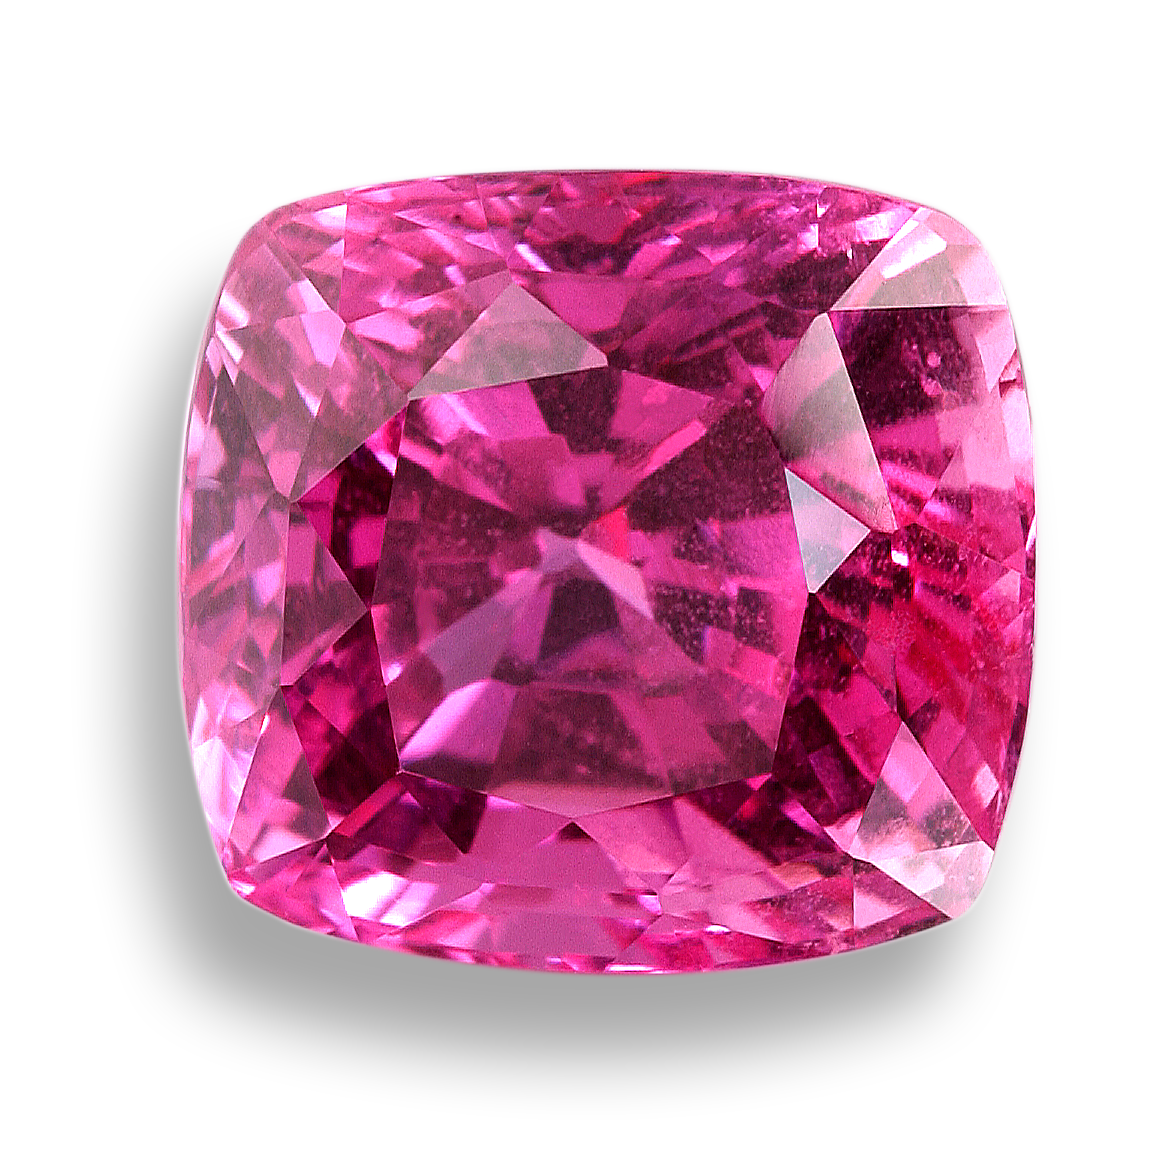 sri carats certified loose new lanka pink sapphire natural gemstone gemstonenew